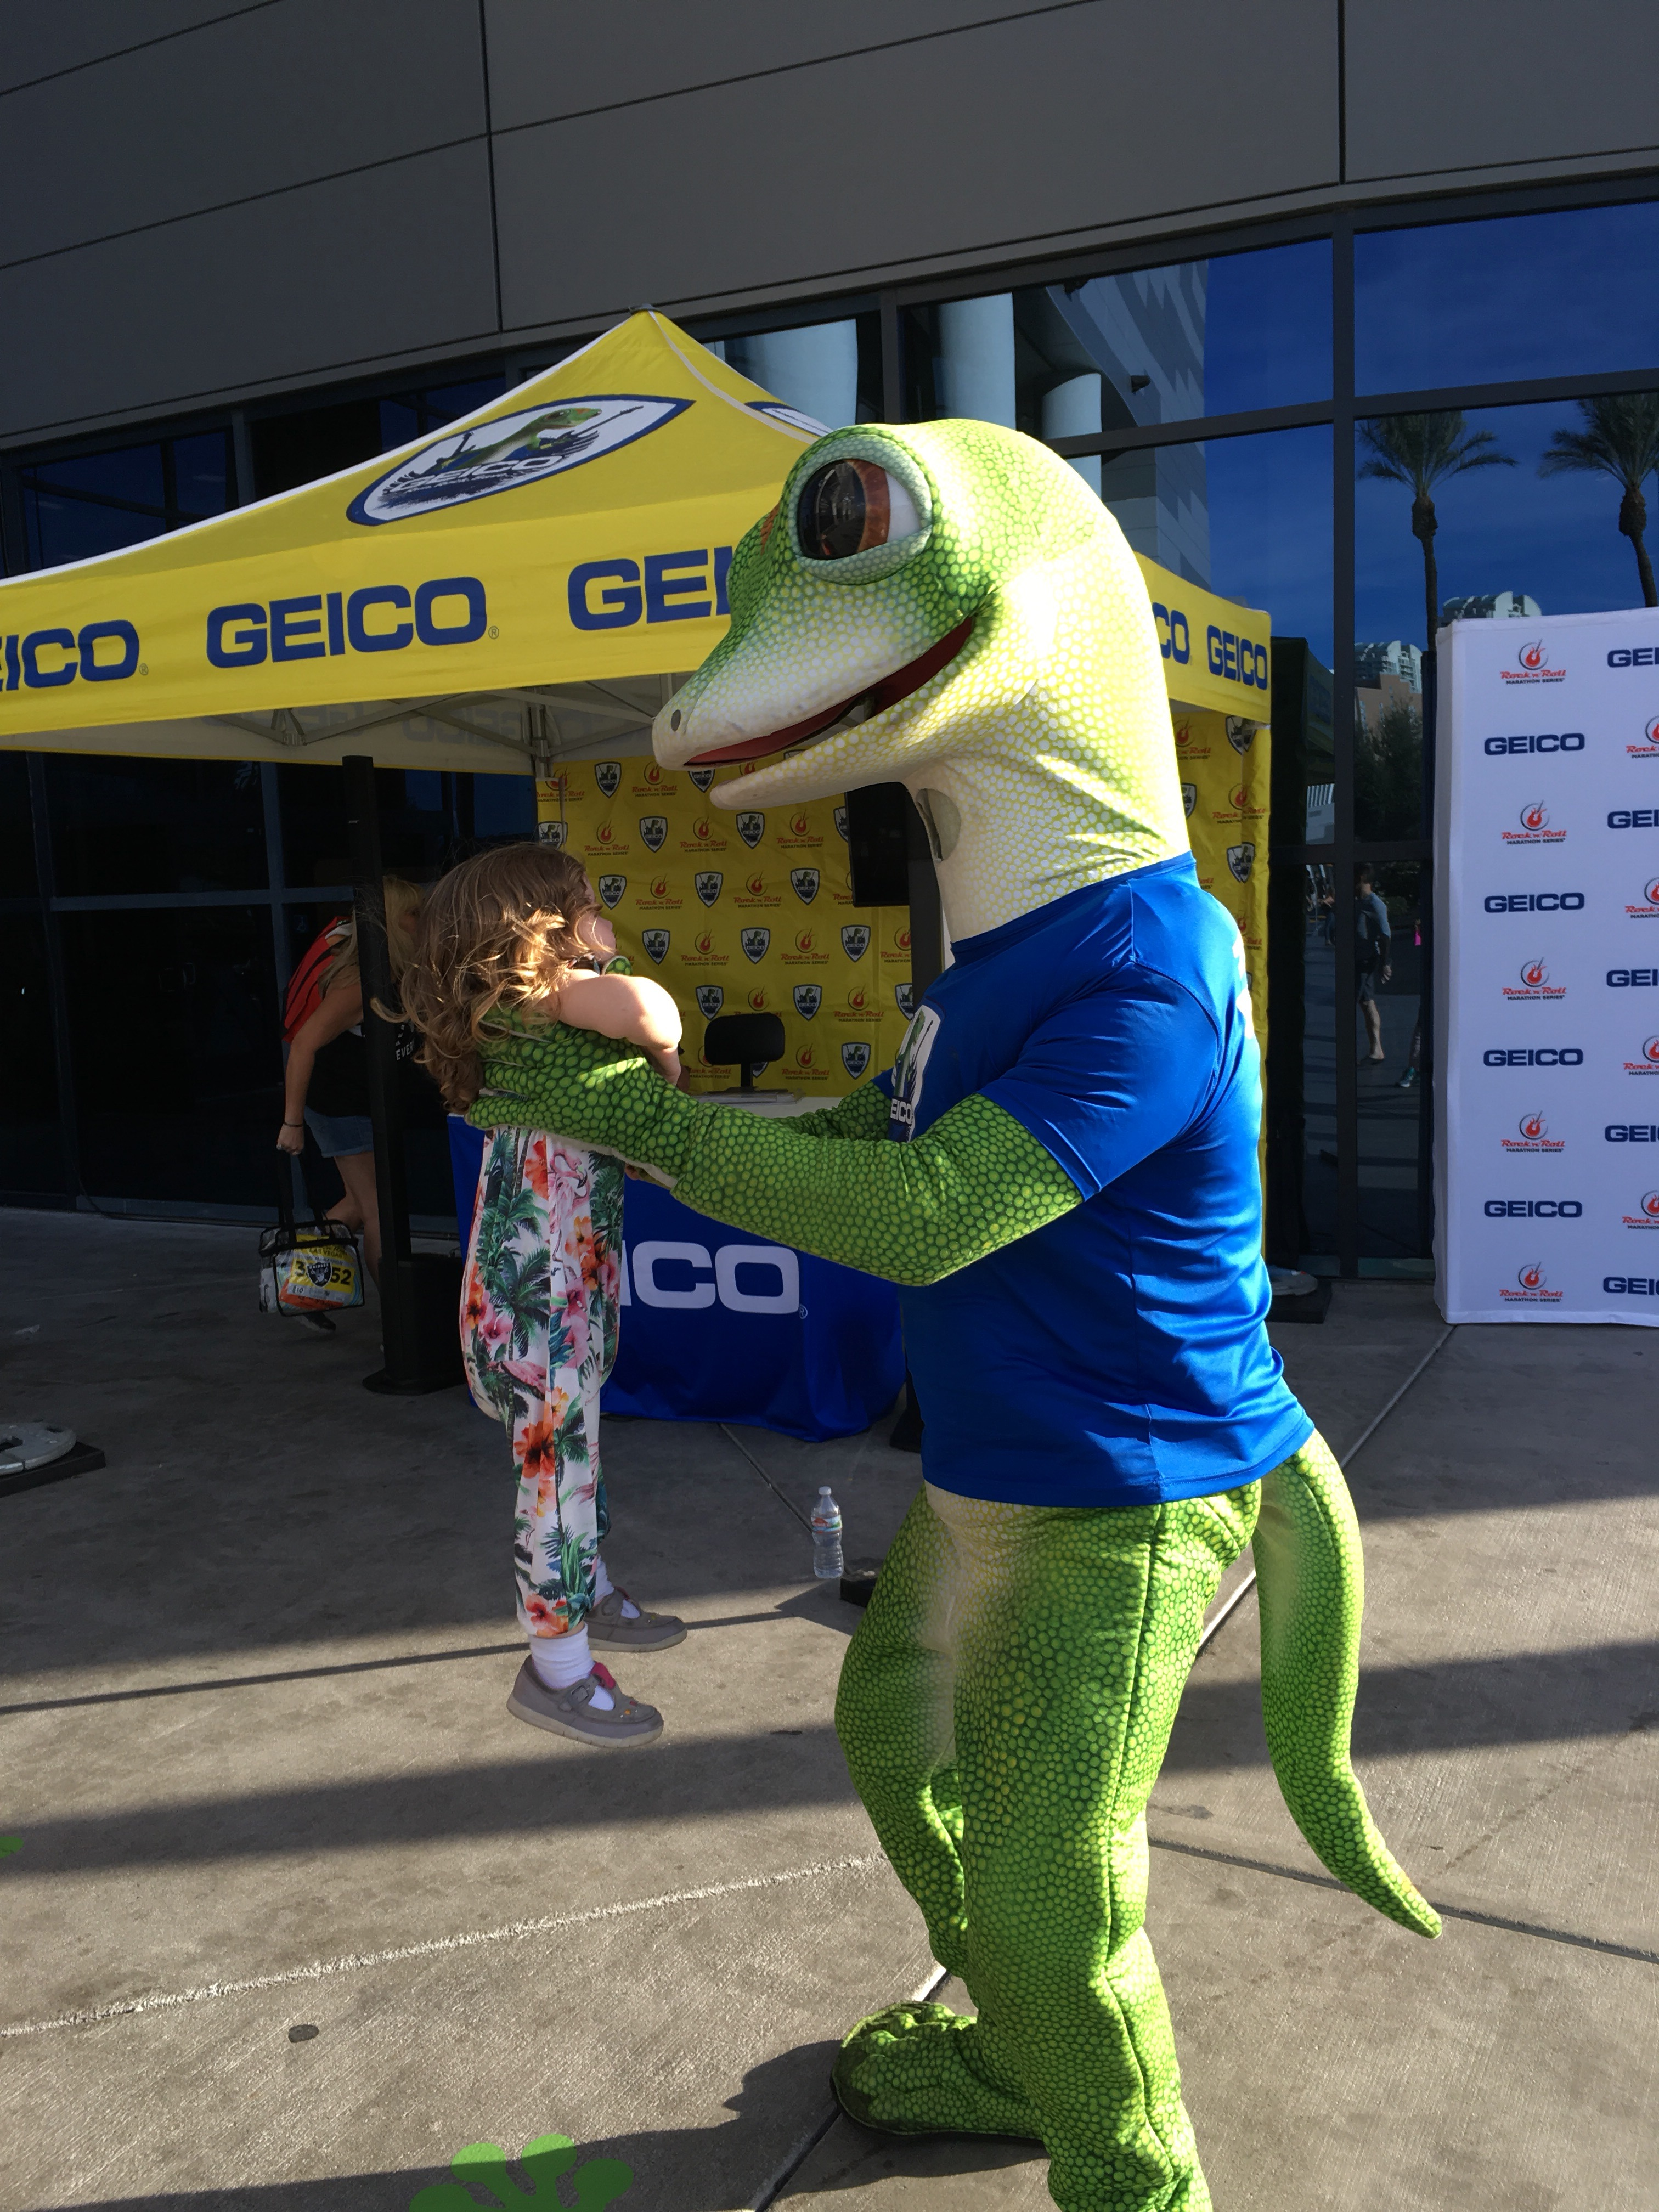 Geico rock and roll